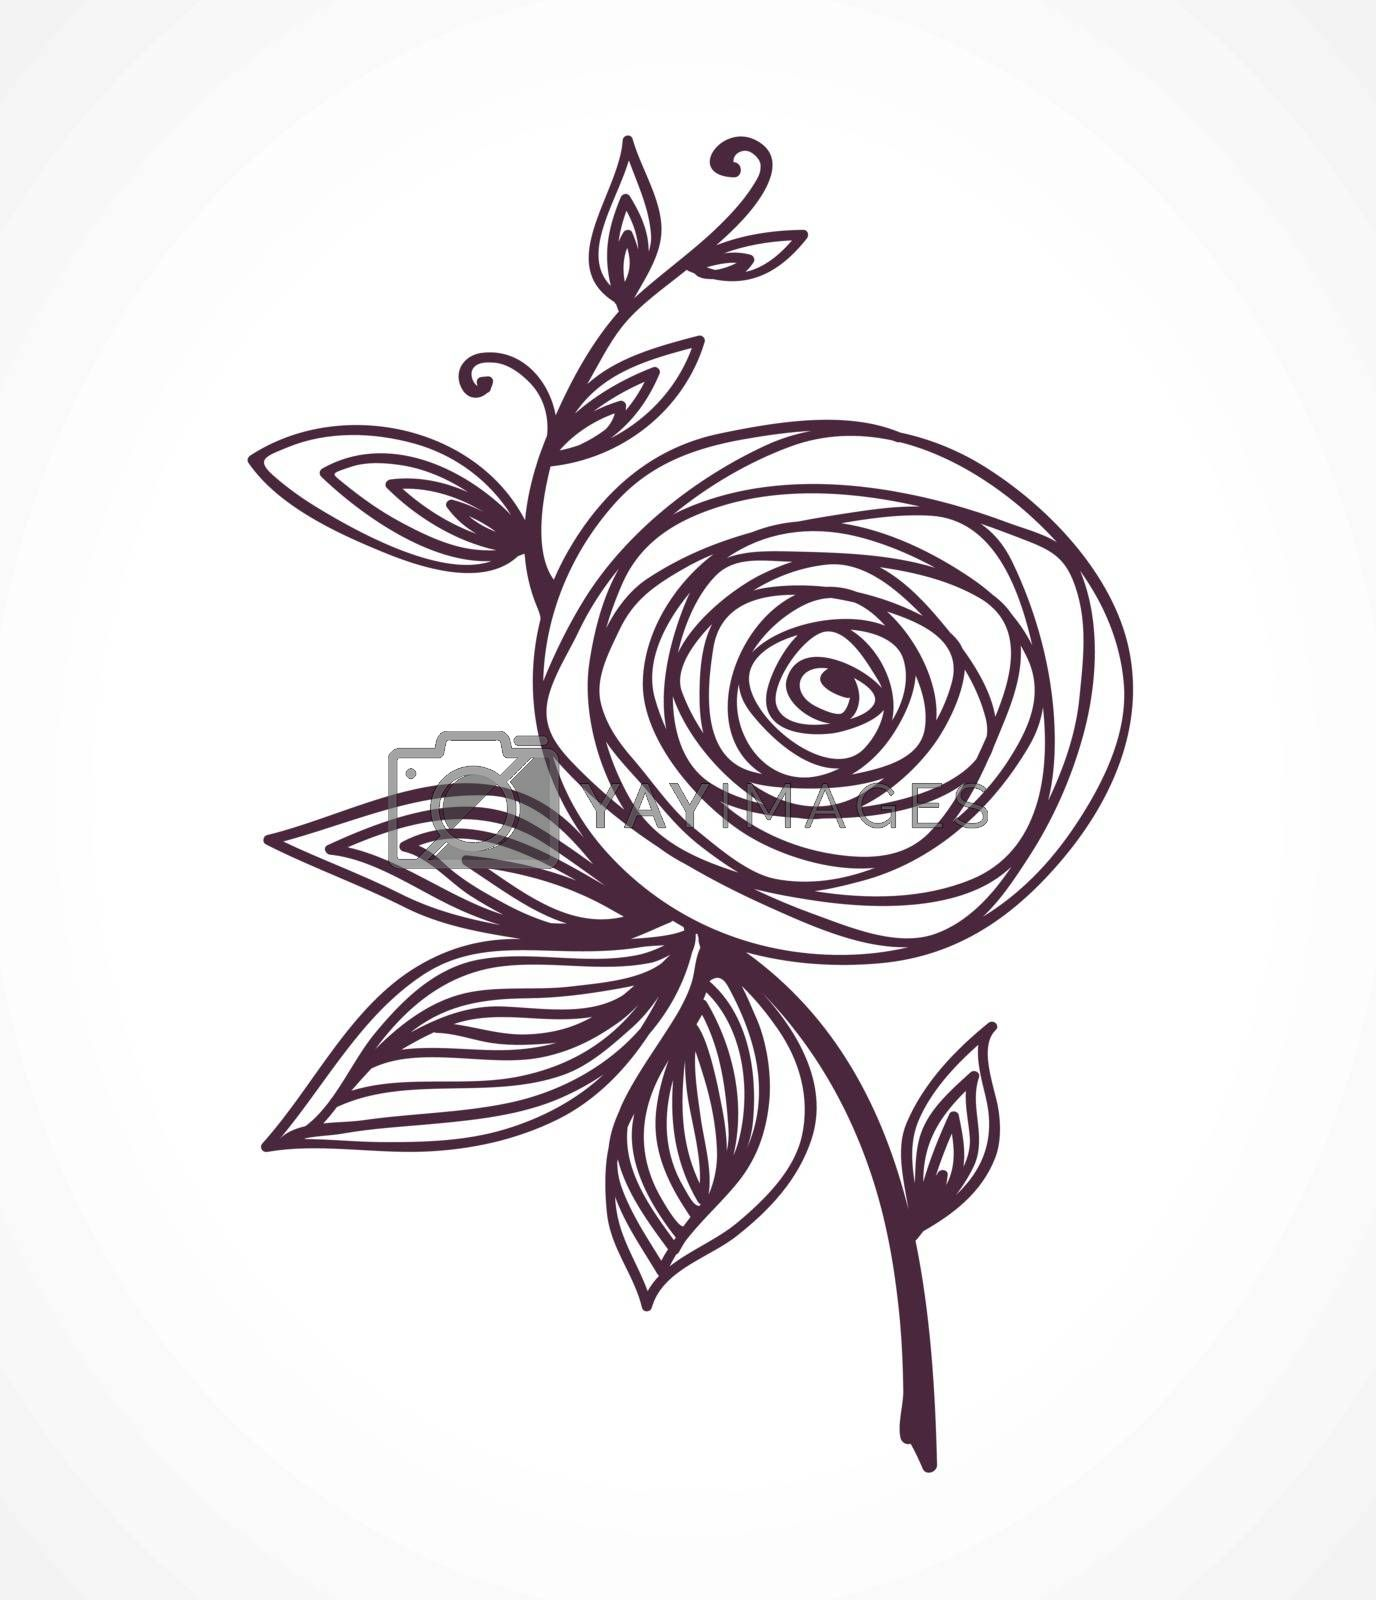 Rose Stylized flower hand drawing. Outline icon symbol. Present for wedding, birthday invitation card